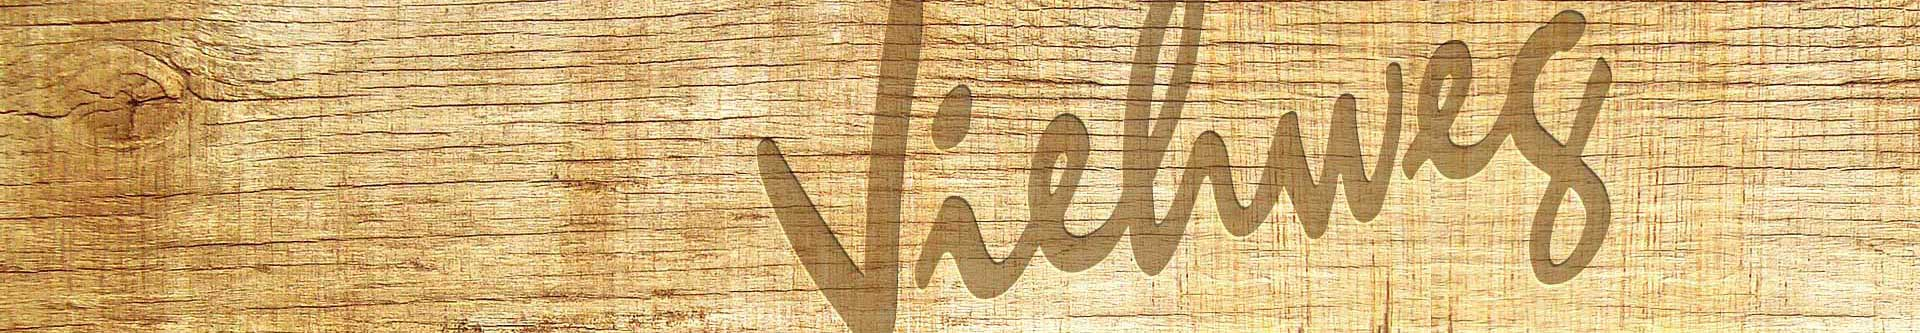 viehweg_wood_Logo_bg_cut